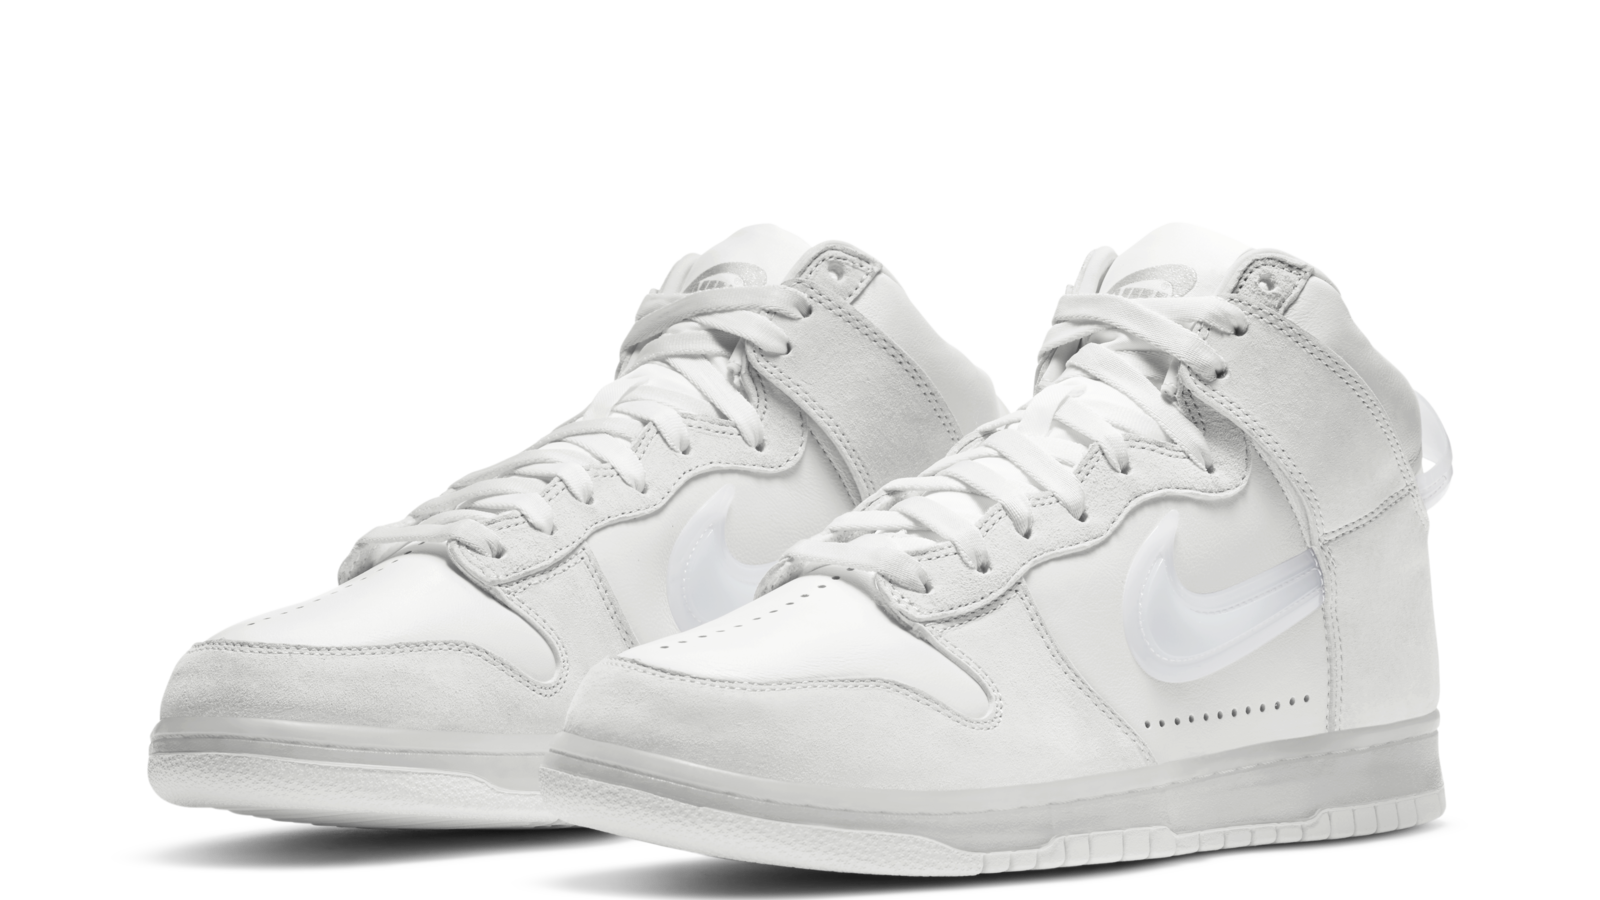 Nike Dunk Slam Jam Release Date and Official Images 4